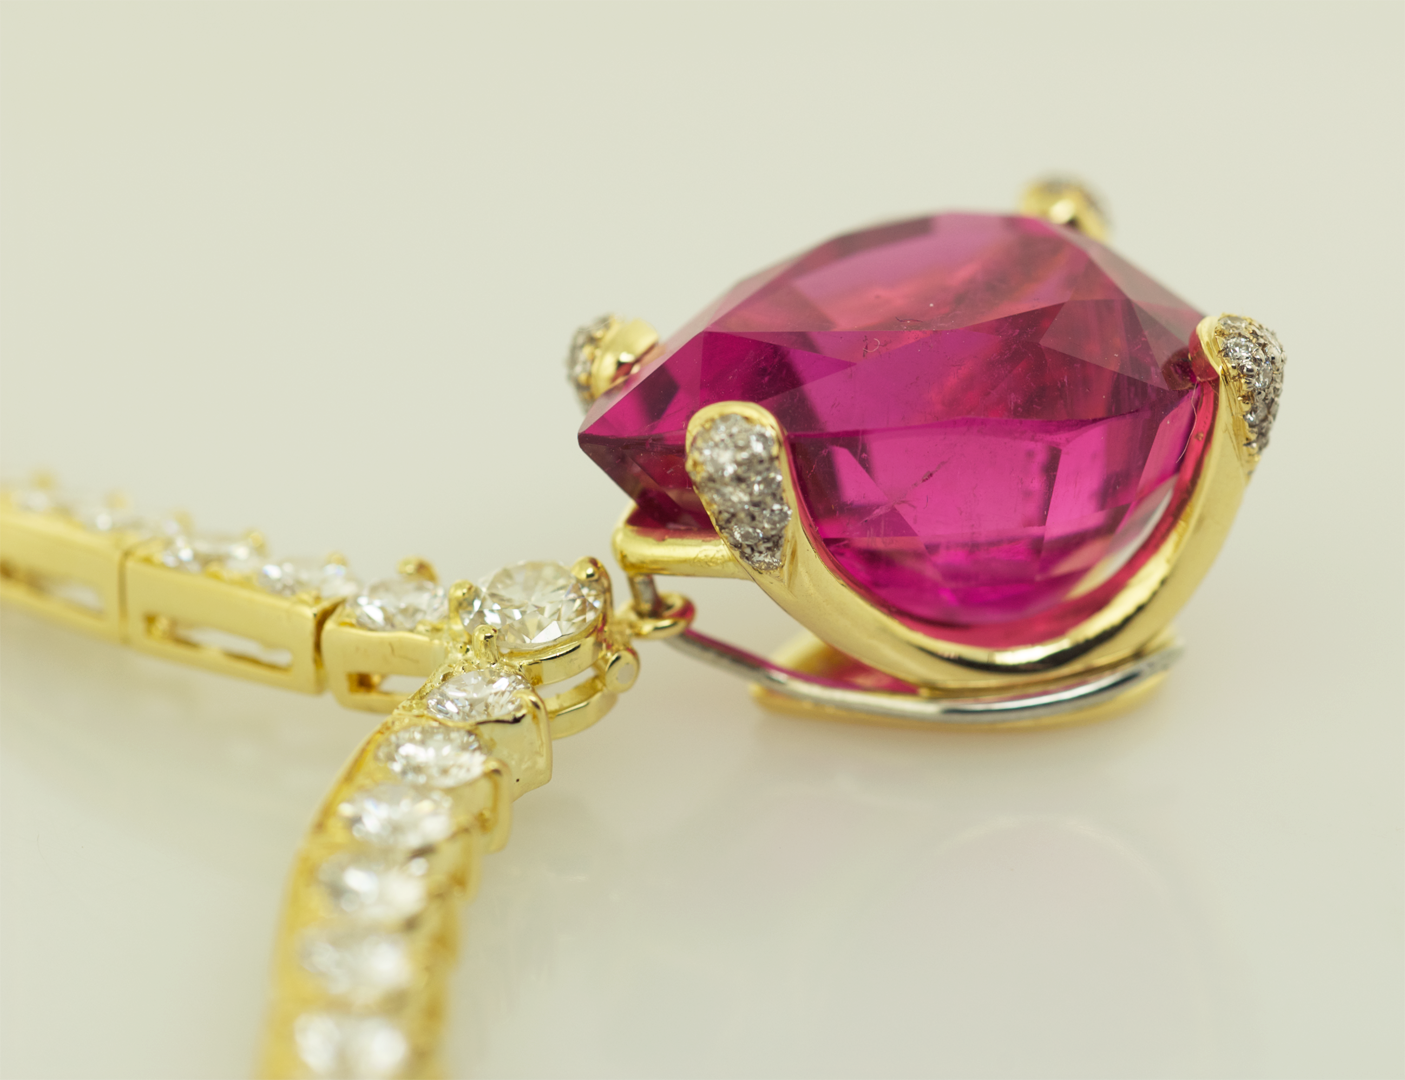 Hot Pink Tourmaline set in 18KT gold on diamond Riviera  necklace, close up